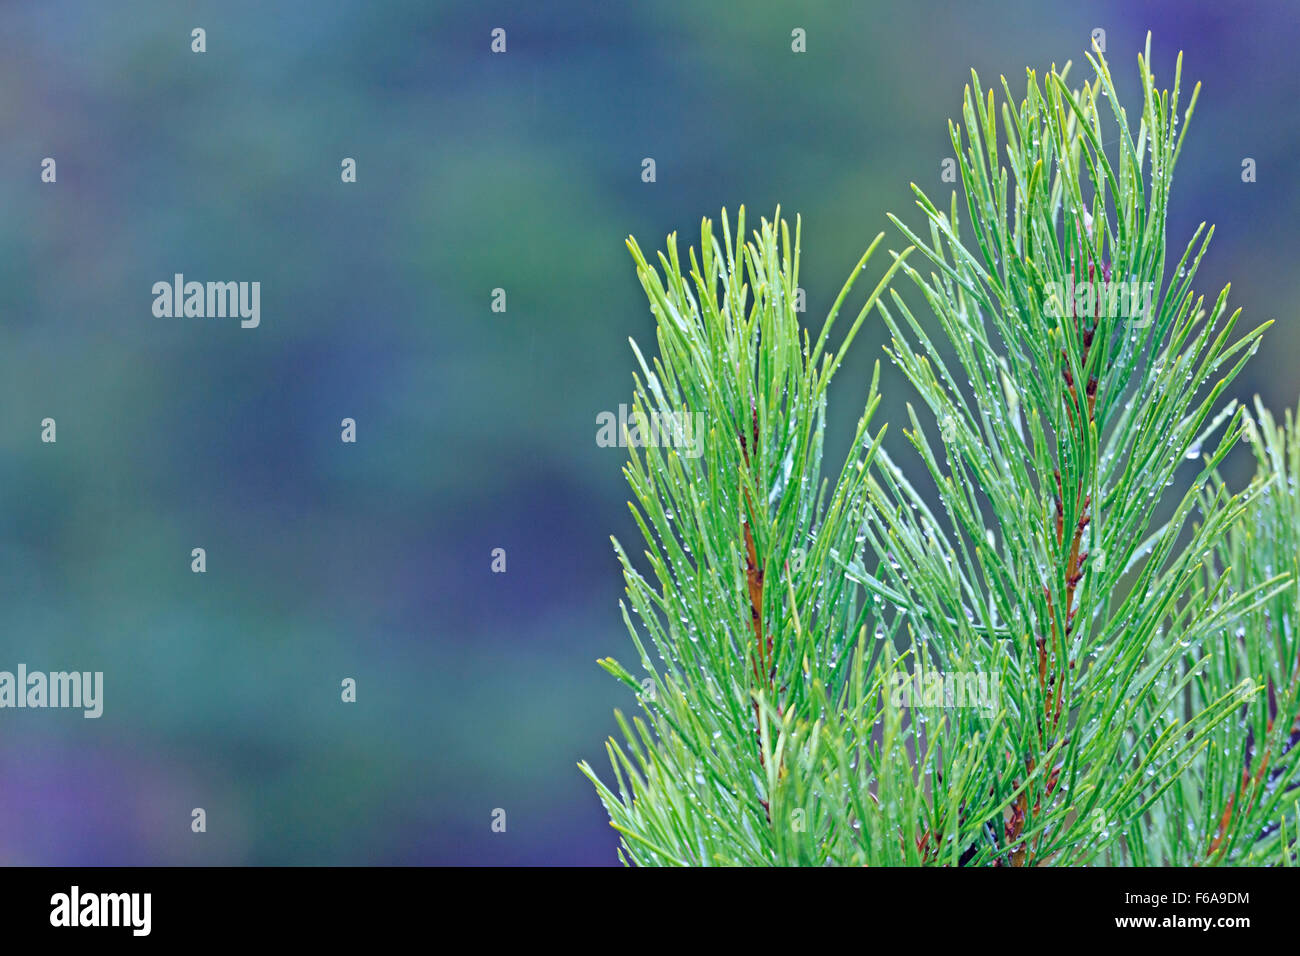 Pine tree seedling growing in replanted forest, near Smithers, British Columbia - Stock Image